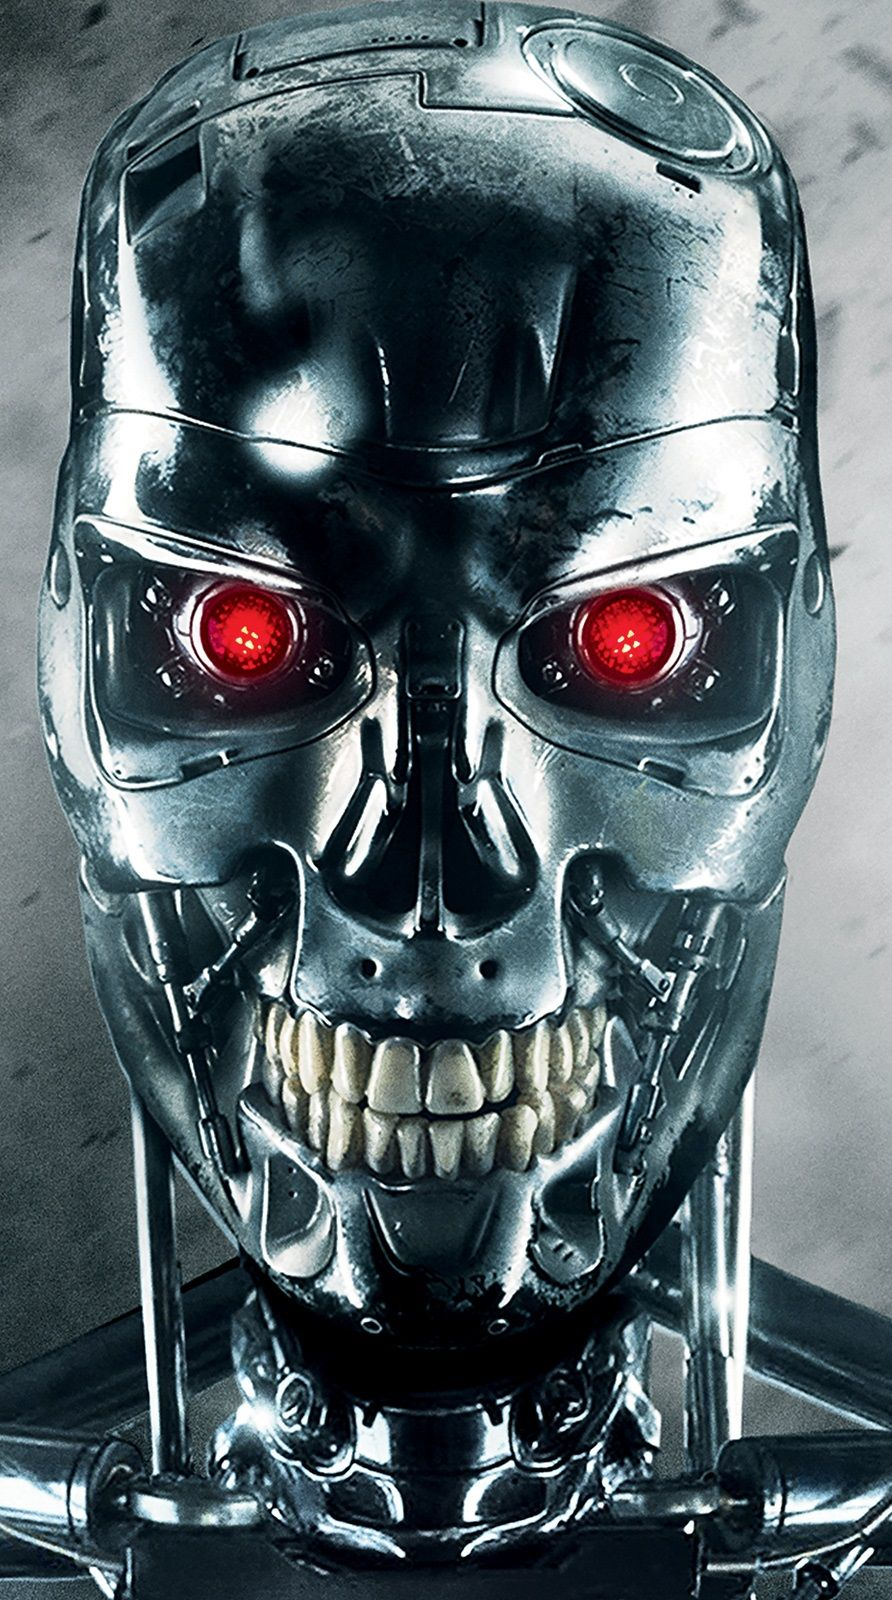 Terminator Genisys 2015 Up Close View Of New Endo Skull Filmes